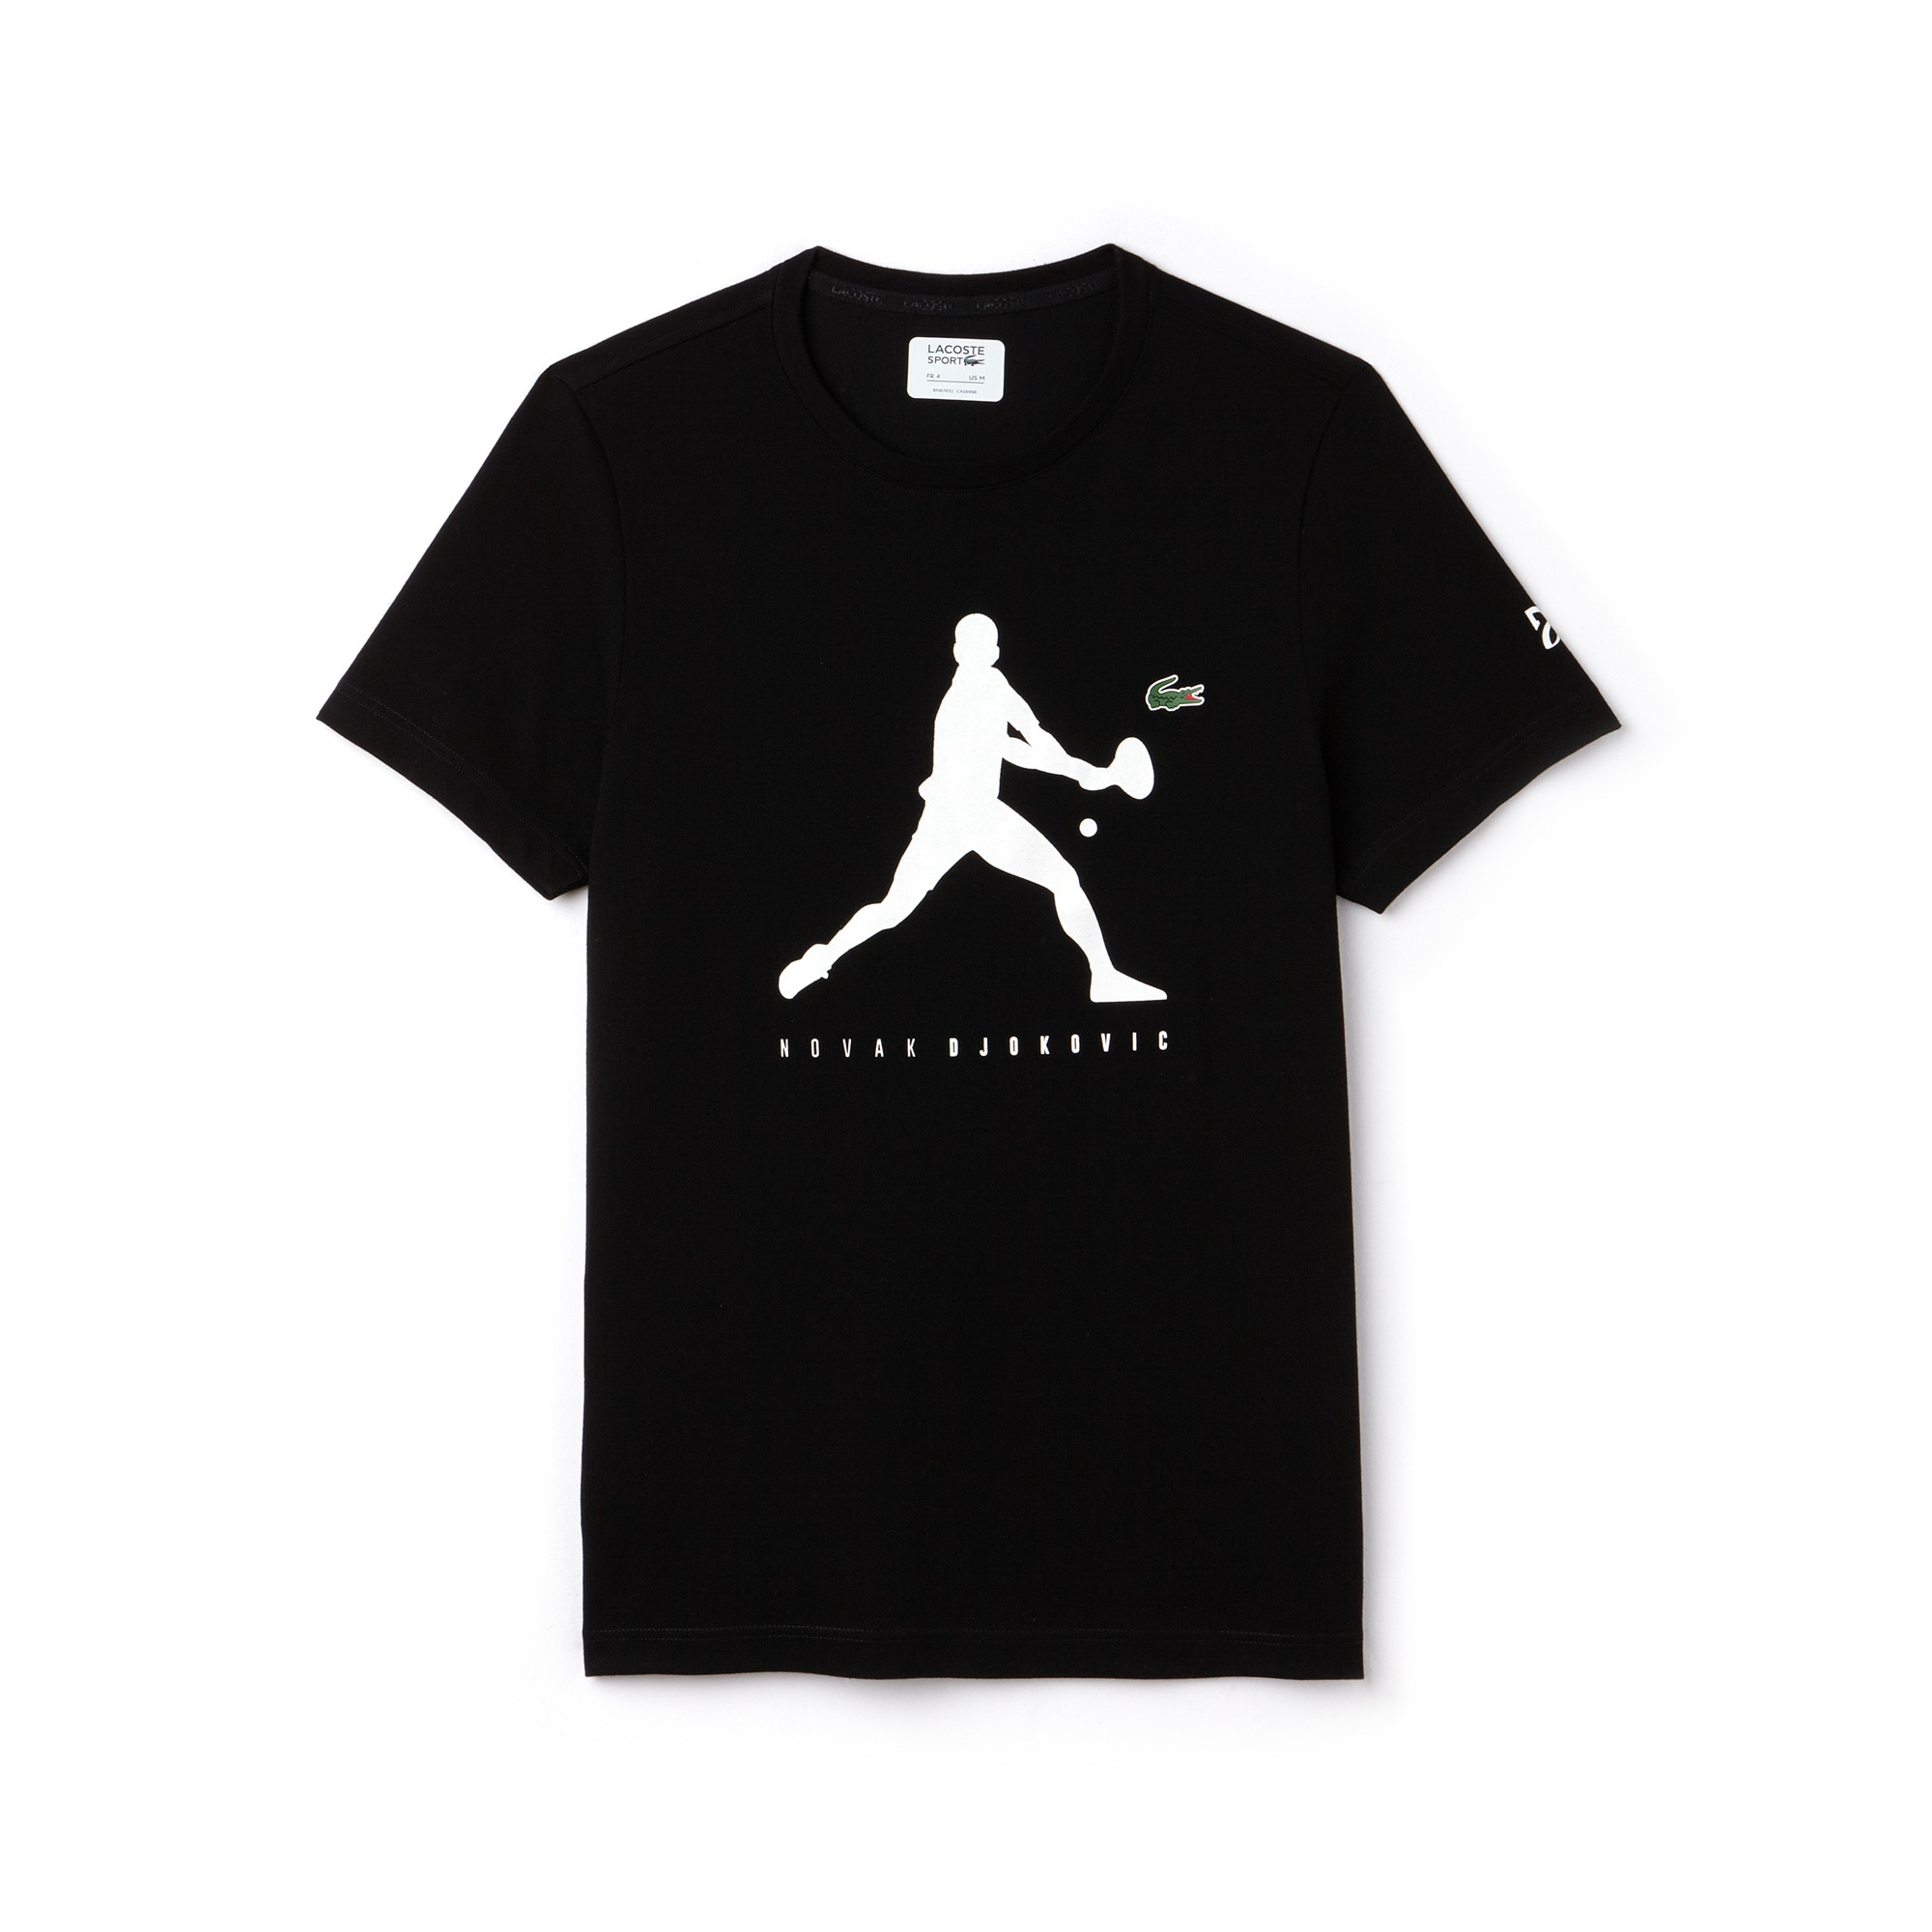 Men's SPORT Tennis T-Shirt - Novak Djokovic Supporter Collection